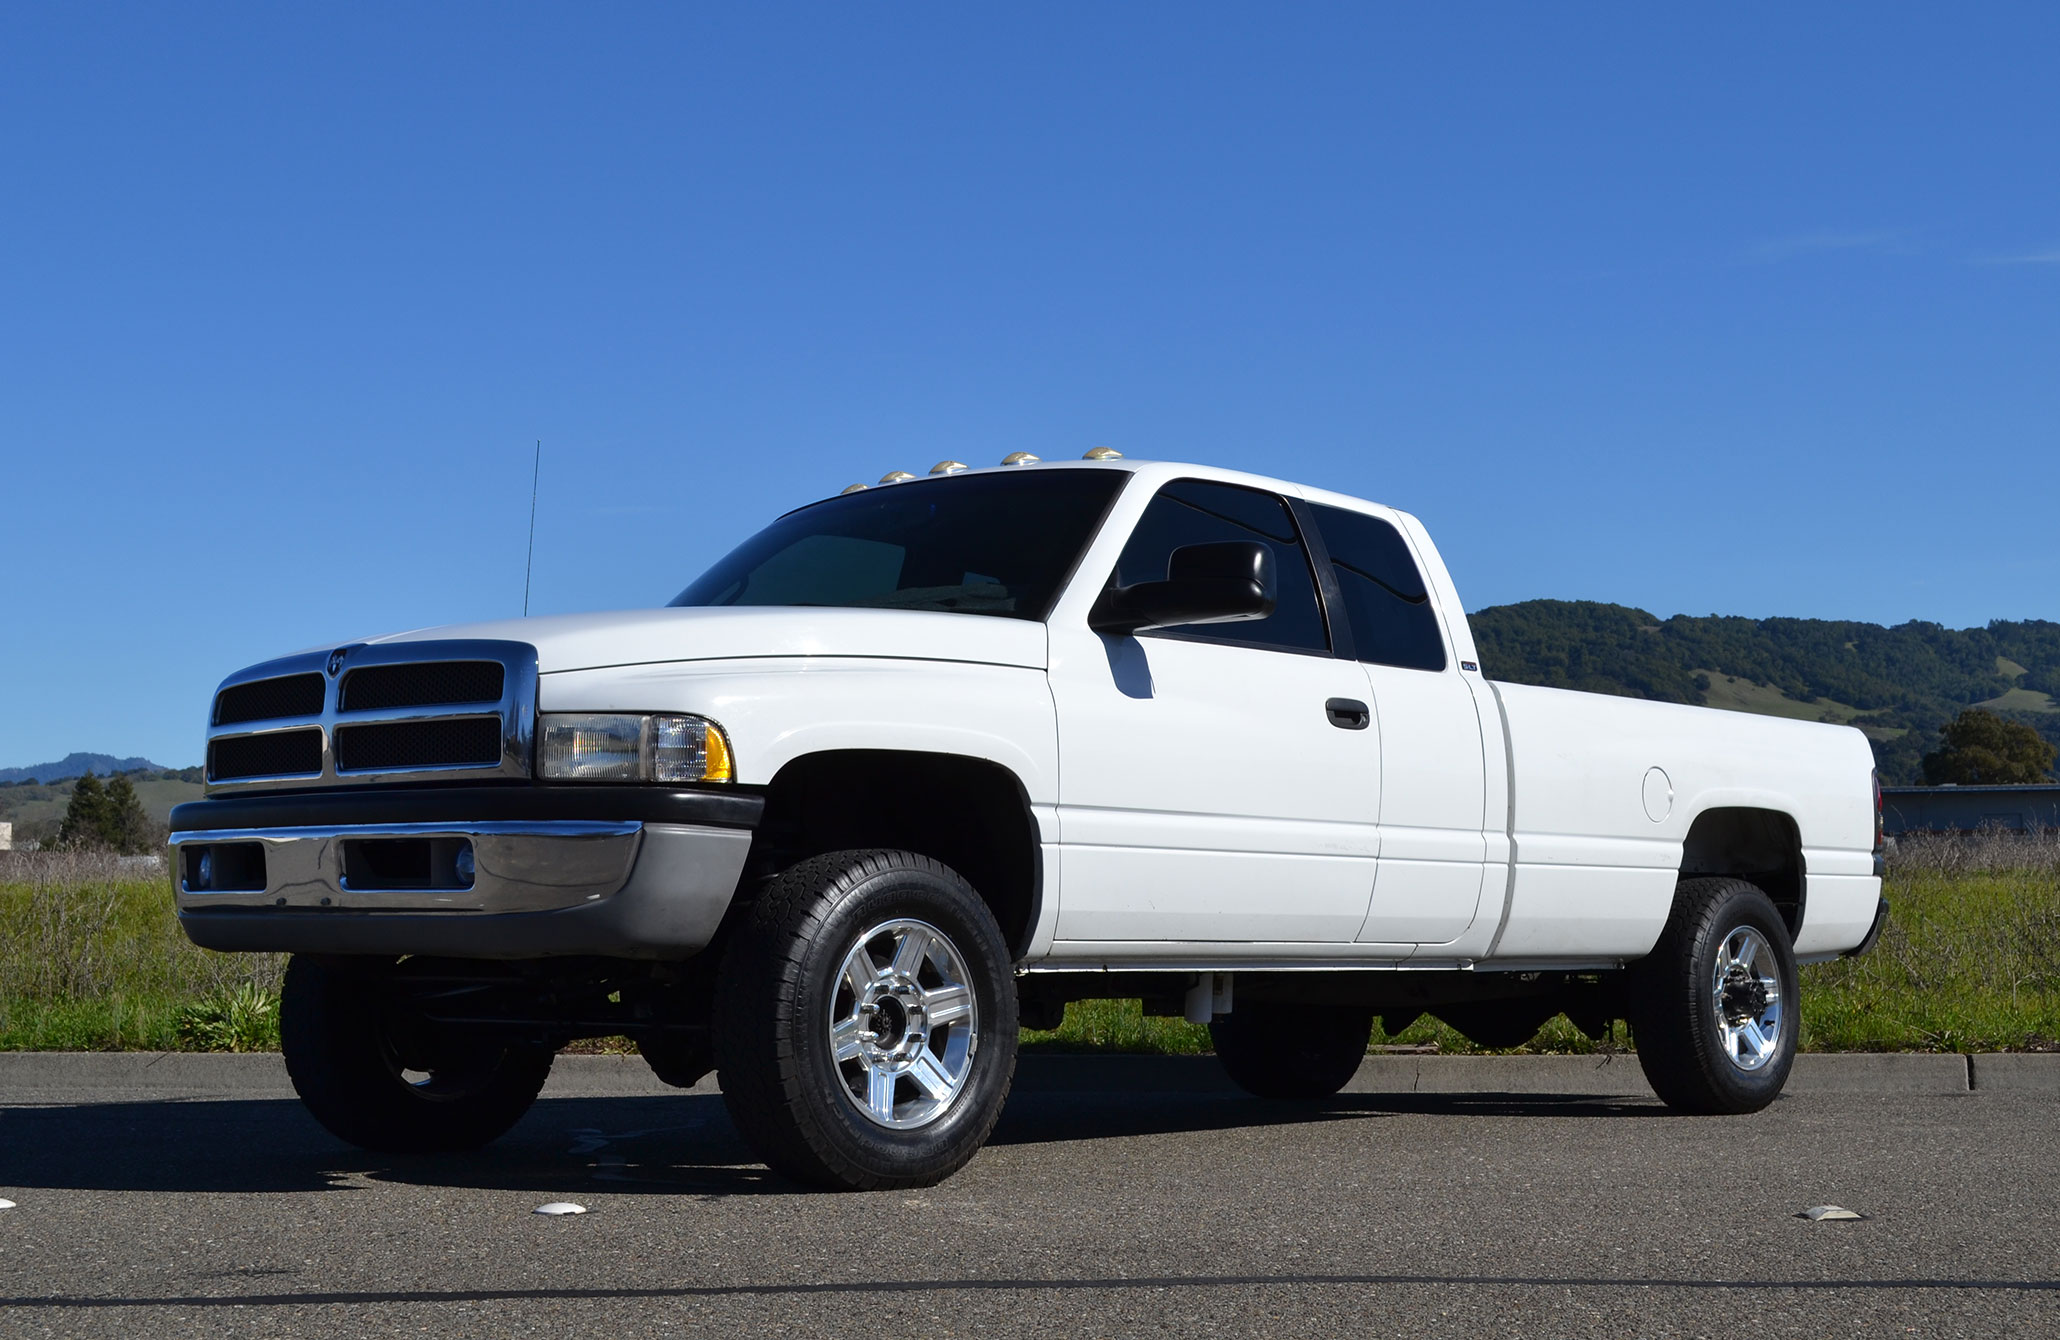 Wild Dodge Ram 2500 Work Truck A P Pumped Cummins That Does It All Photo Image Gallery